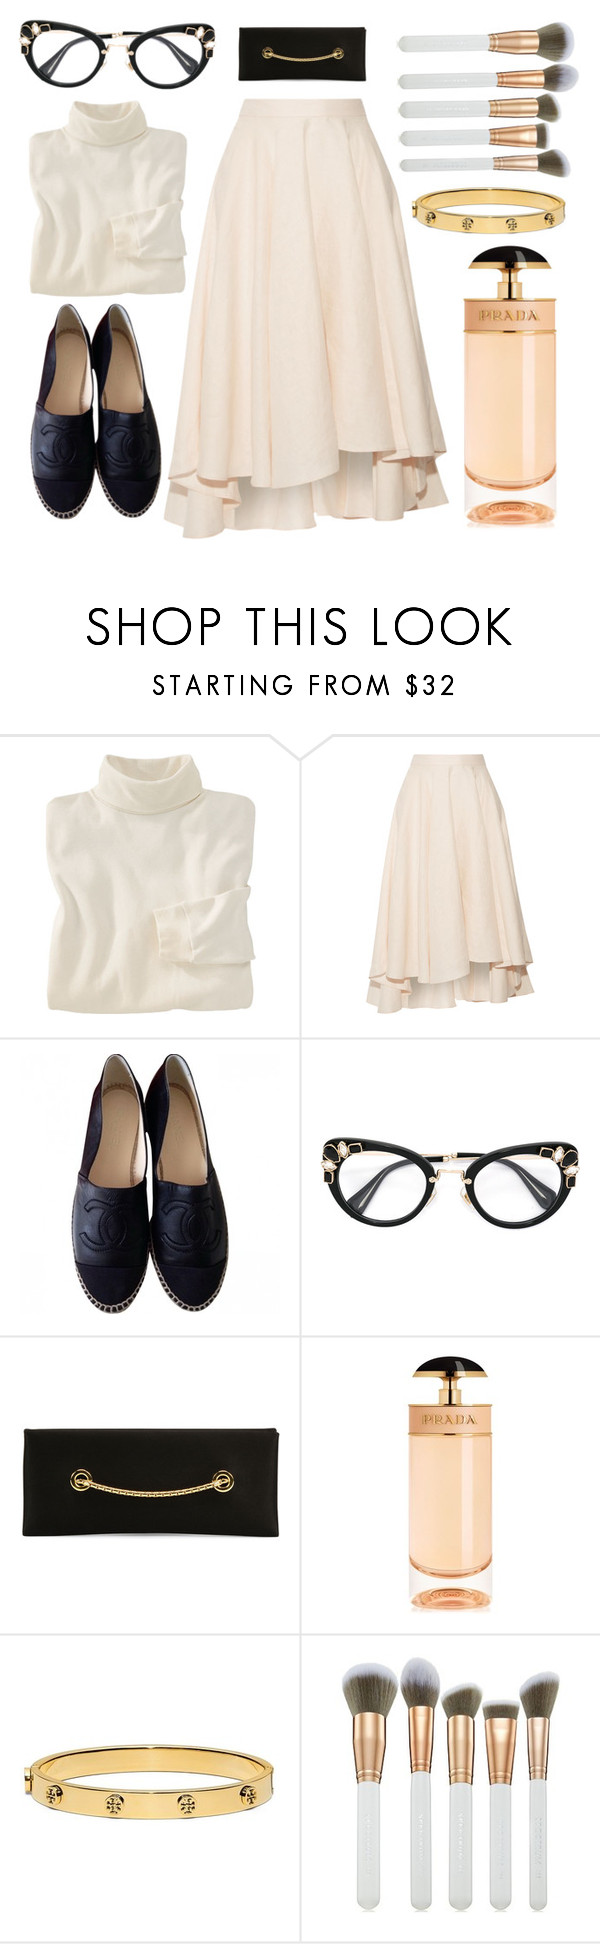 """Classic Cream."" by refinedpunk ❤ liked on Polyvore featuring Woolrich, Miguelina, Chanel, Miu Miu, Tom Ford, Prada, Tory Burch, Spectrum and espadrilles"